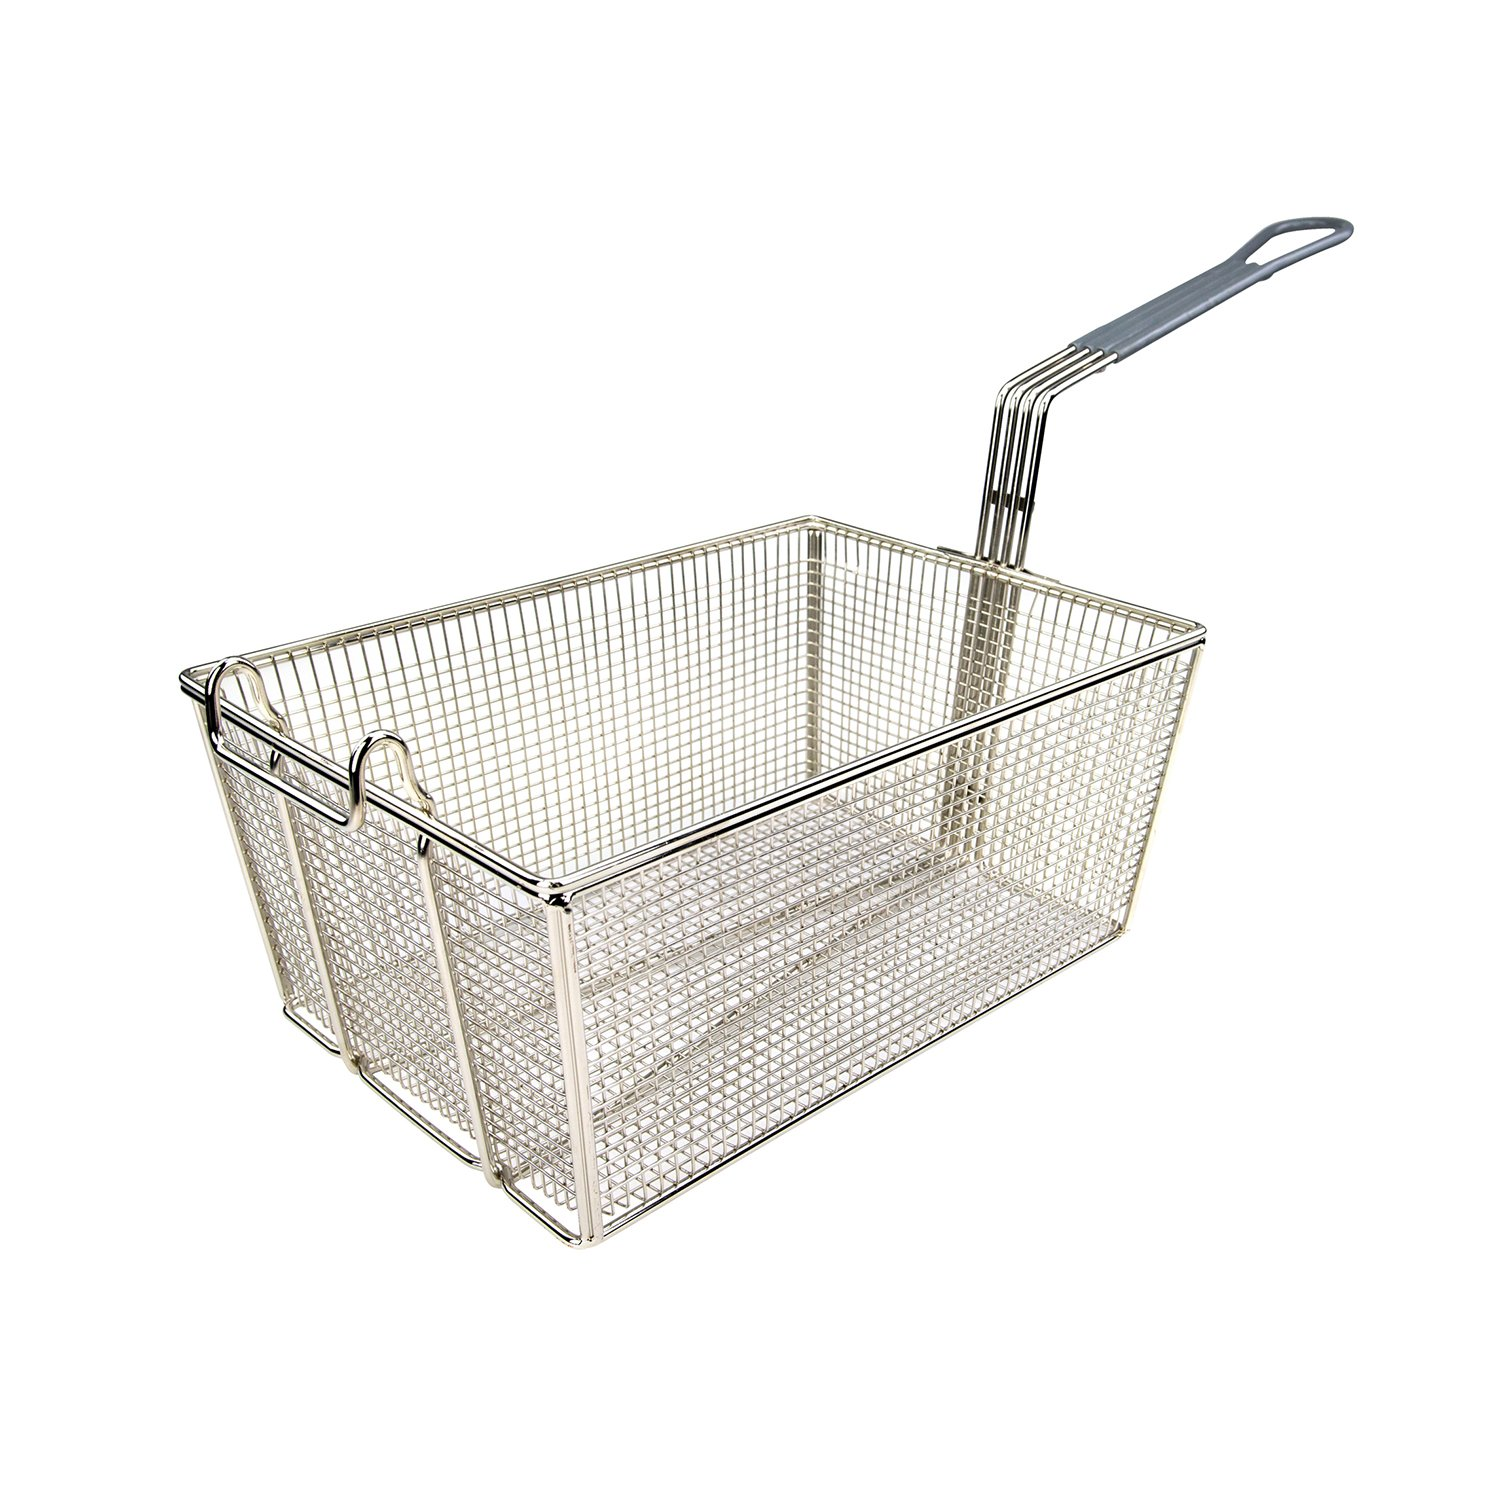 Wincо FB-35 Nickel-Plated Fry Basket 13-3/8'' with Gray Coated Handle